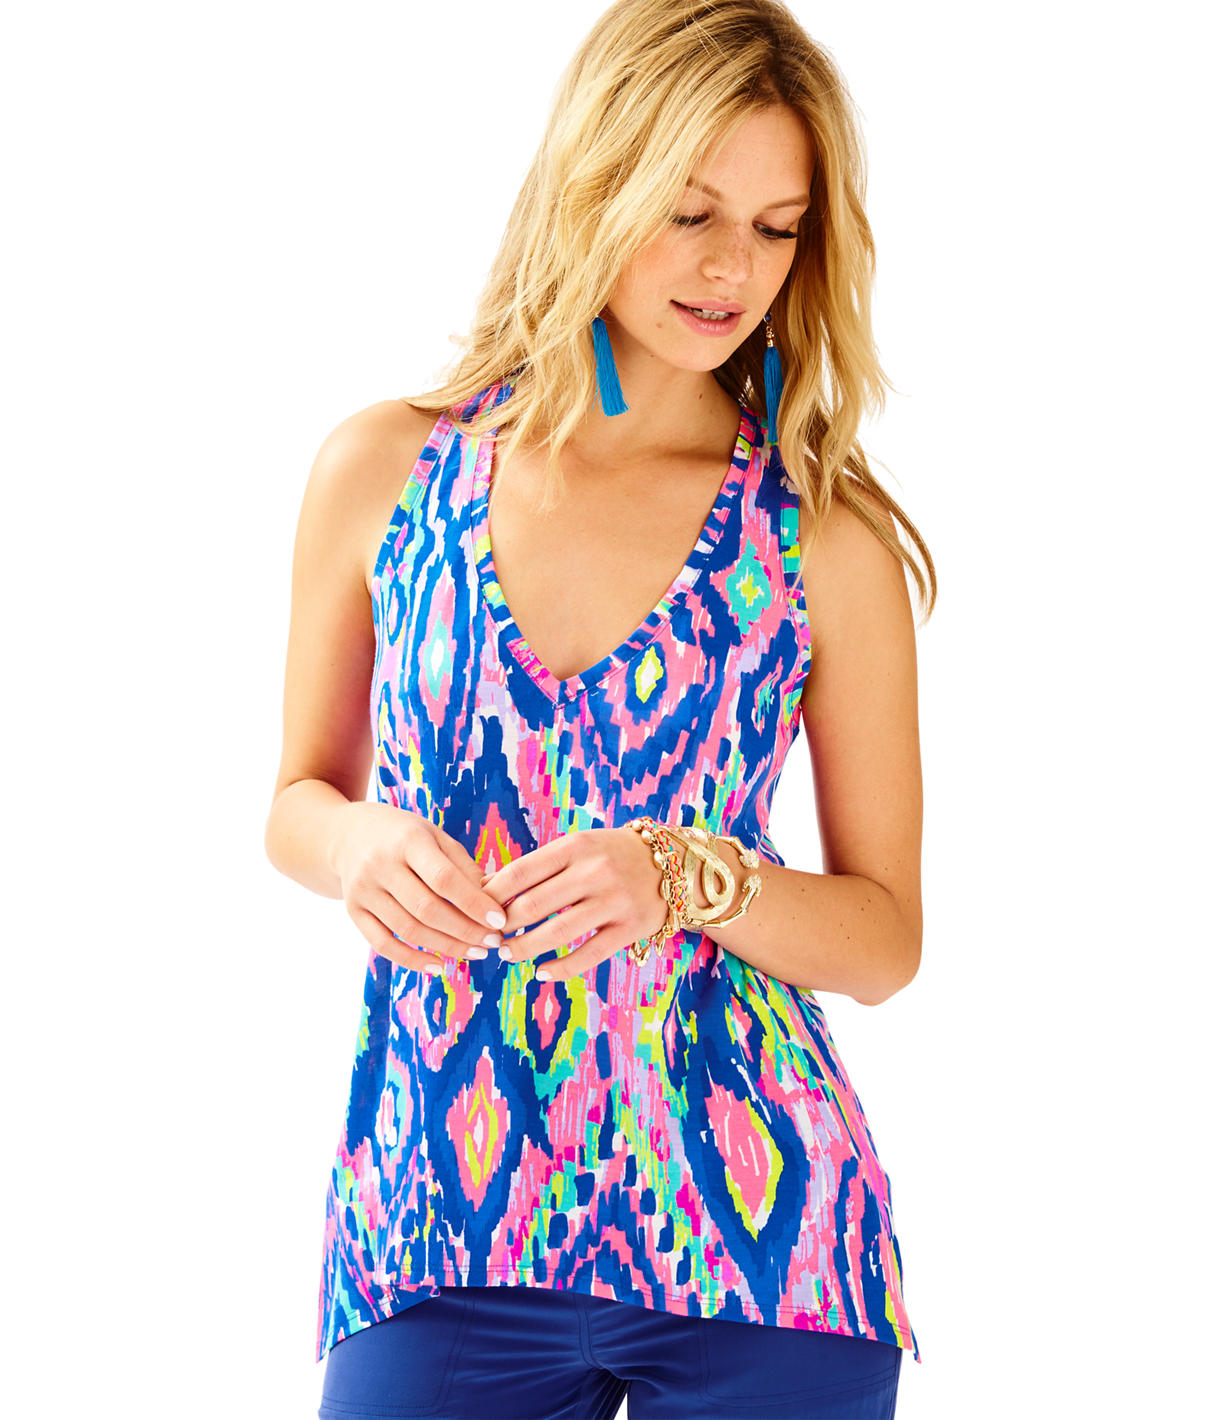 Lilly Pulitzer Kiawah Racer Back Tank Top